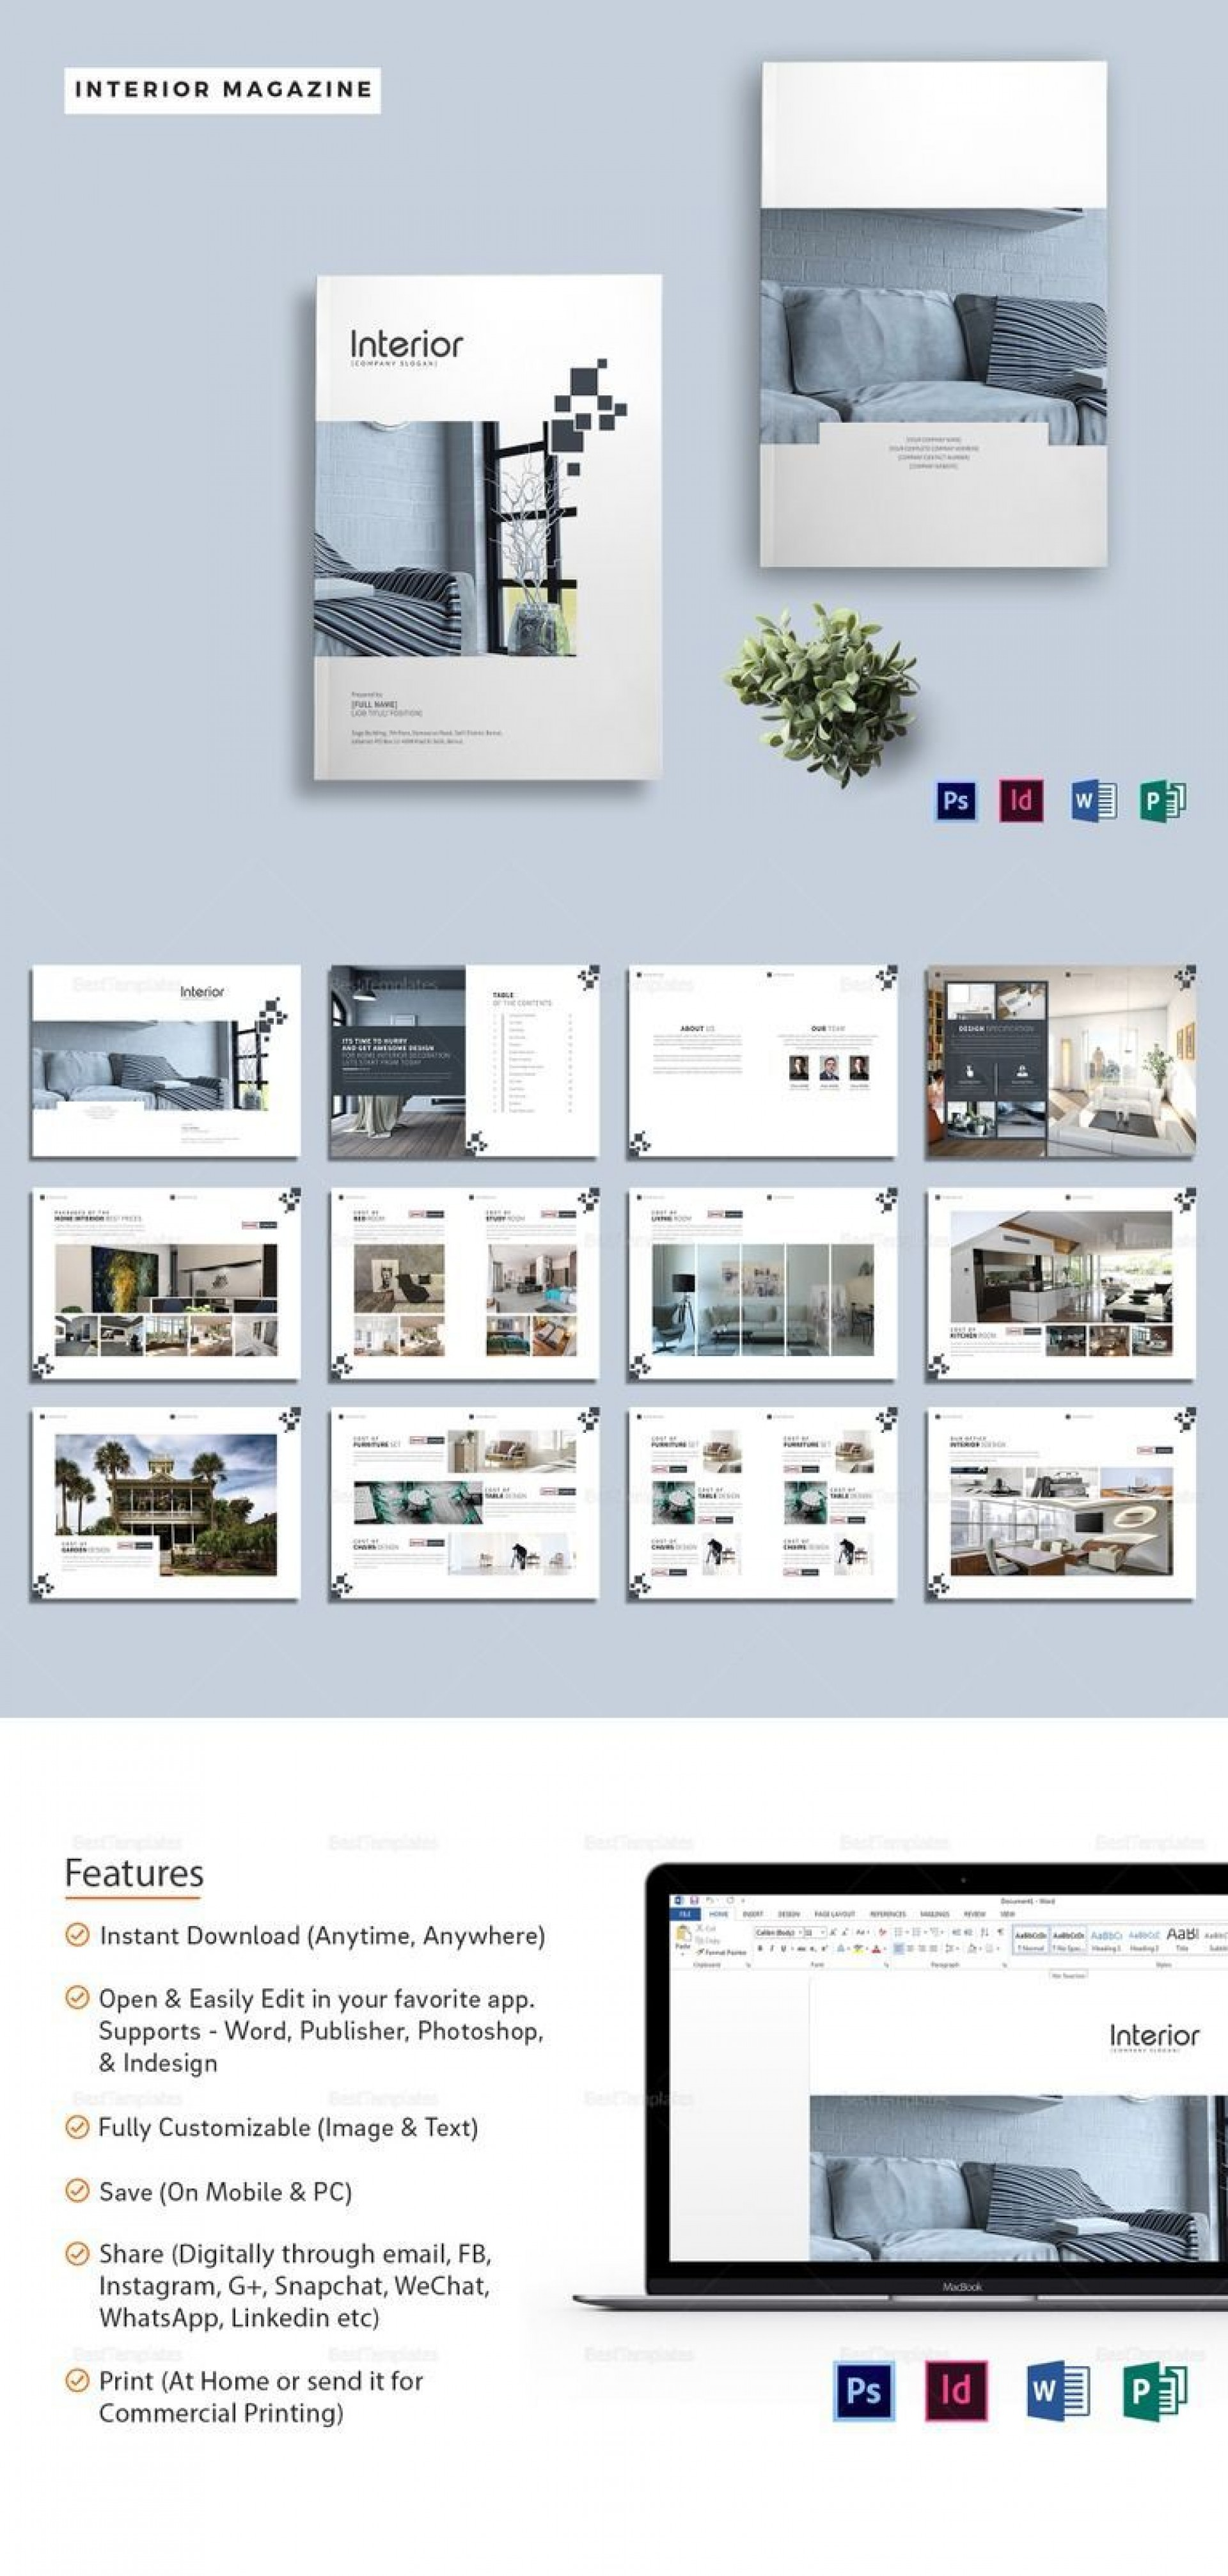 003 Best Magazine Template For Microsoft Word Picture  Layout Design Download1920